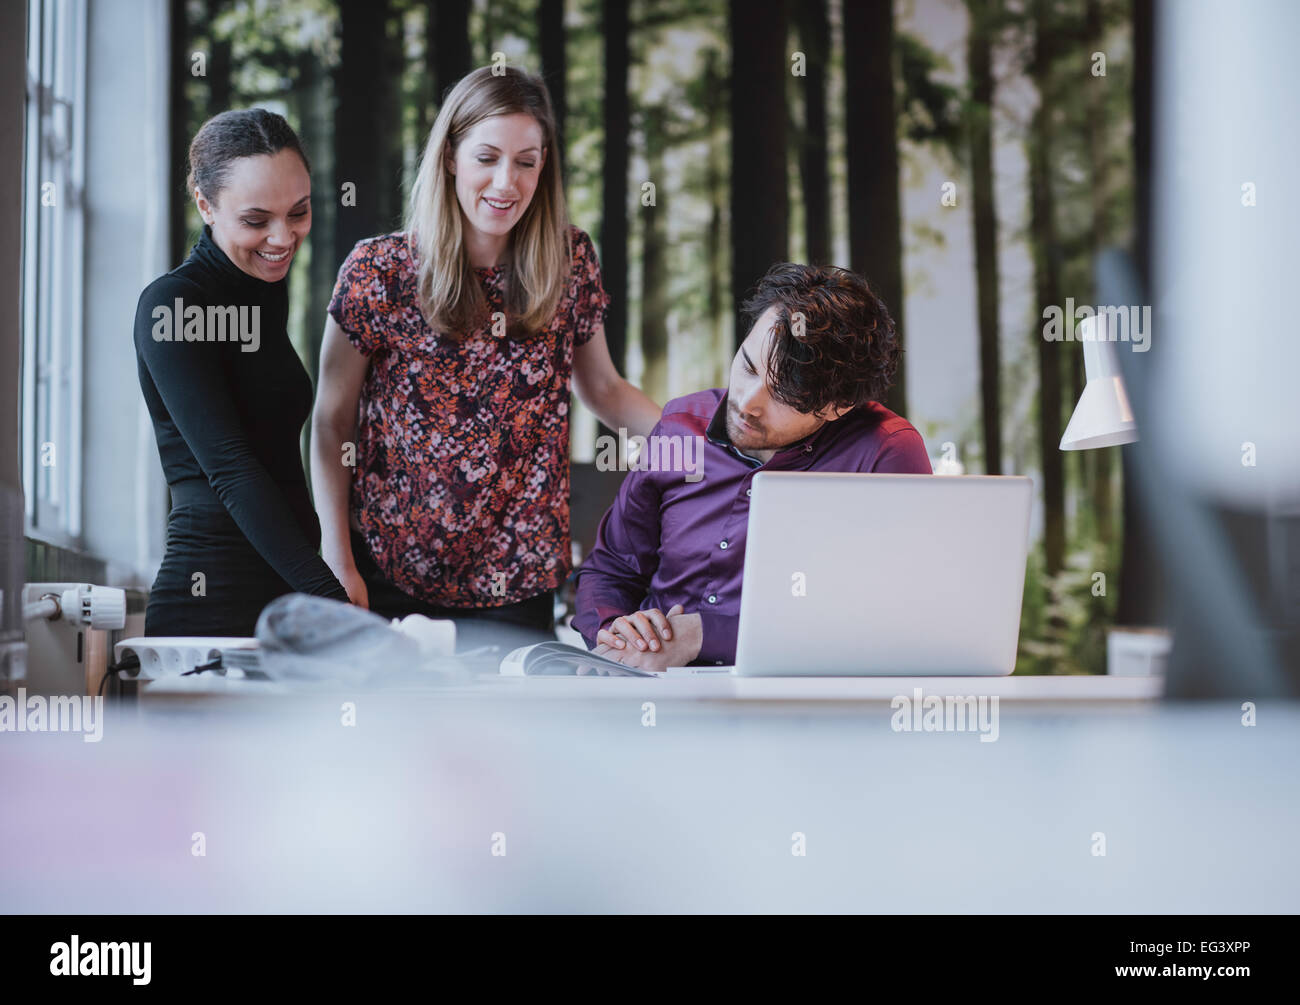 Team of young professionals looking at a catalogue and smiling. Creative team together viewing at a book on desk. - Stock Image